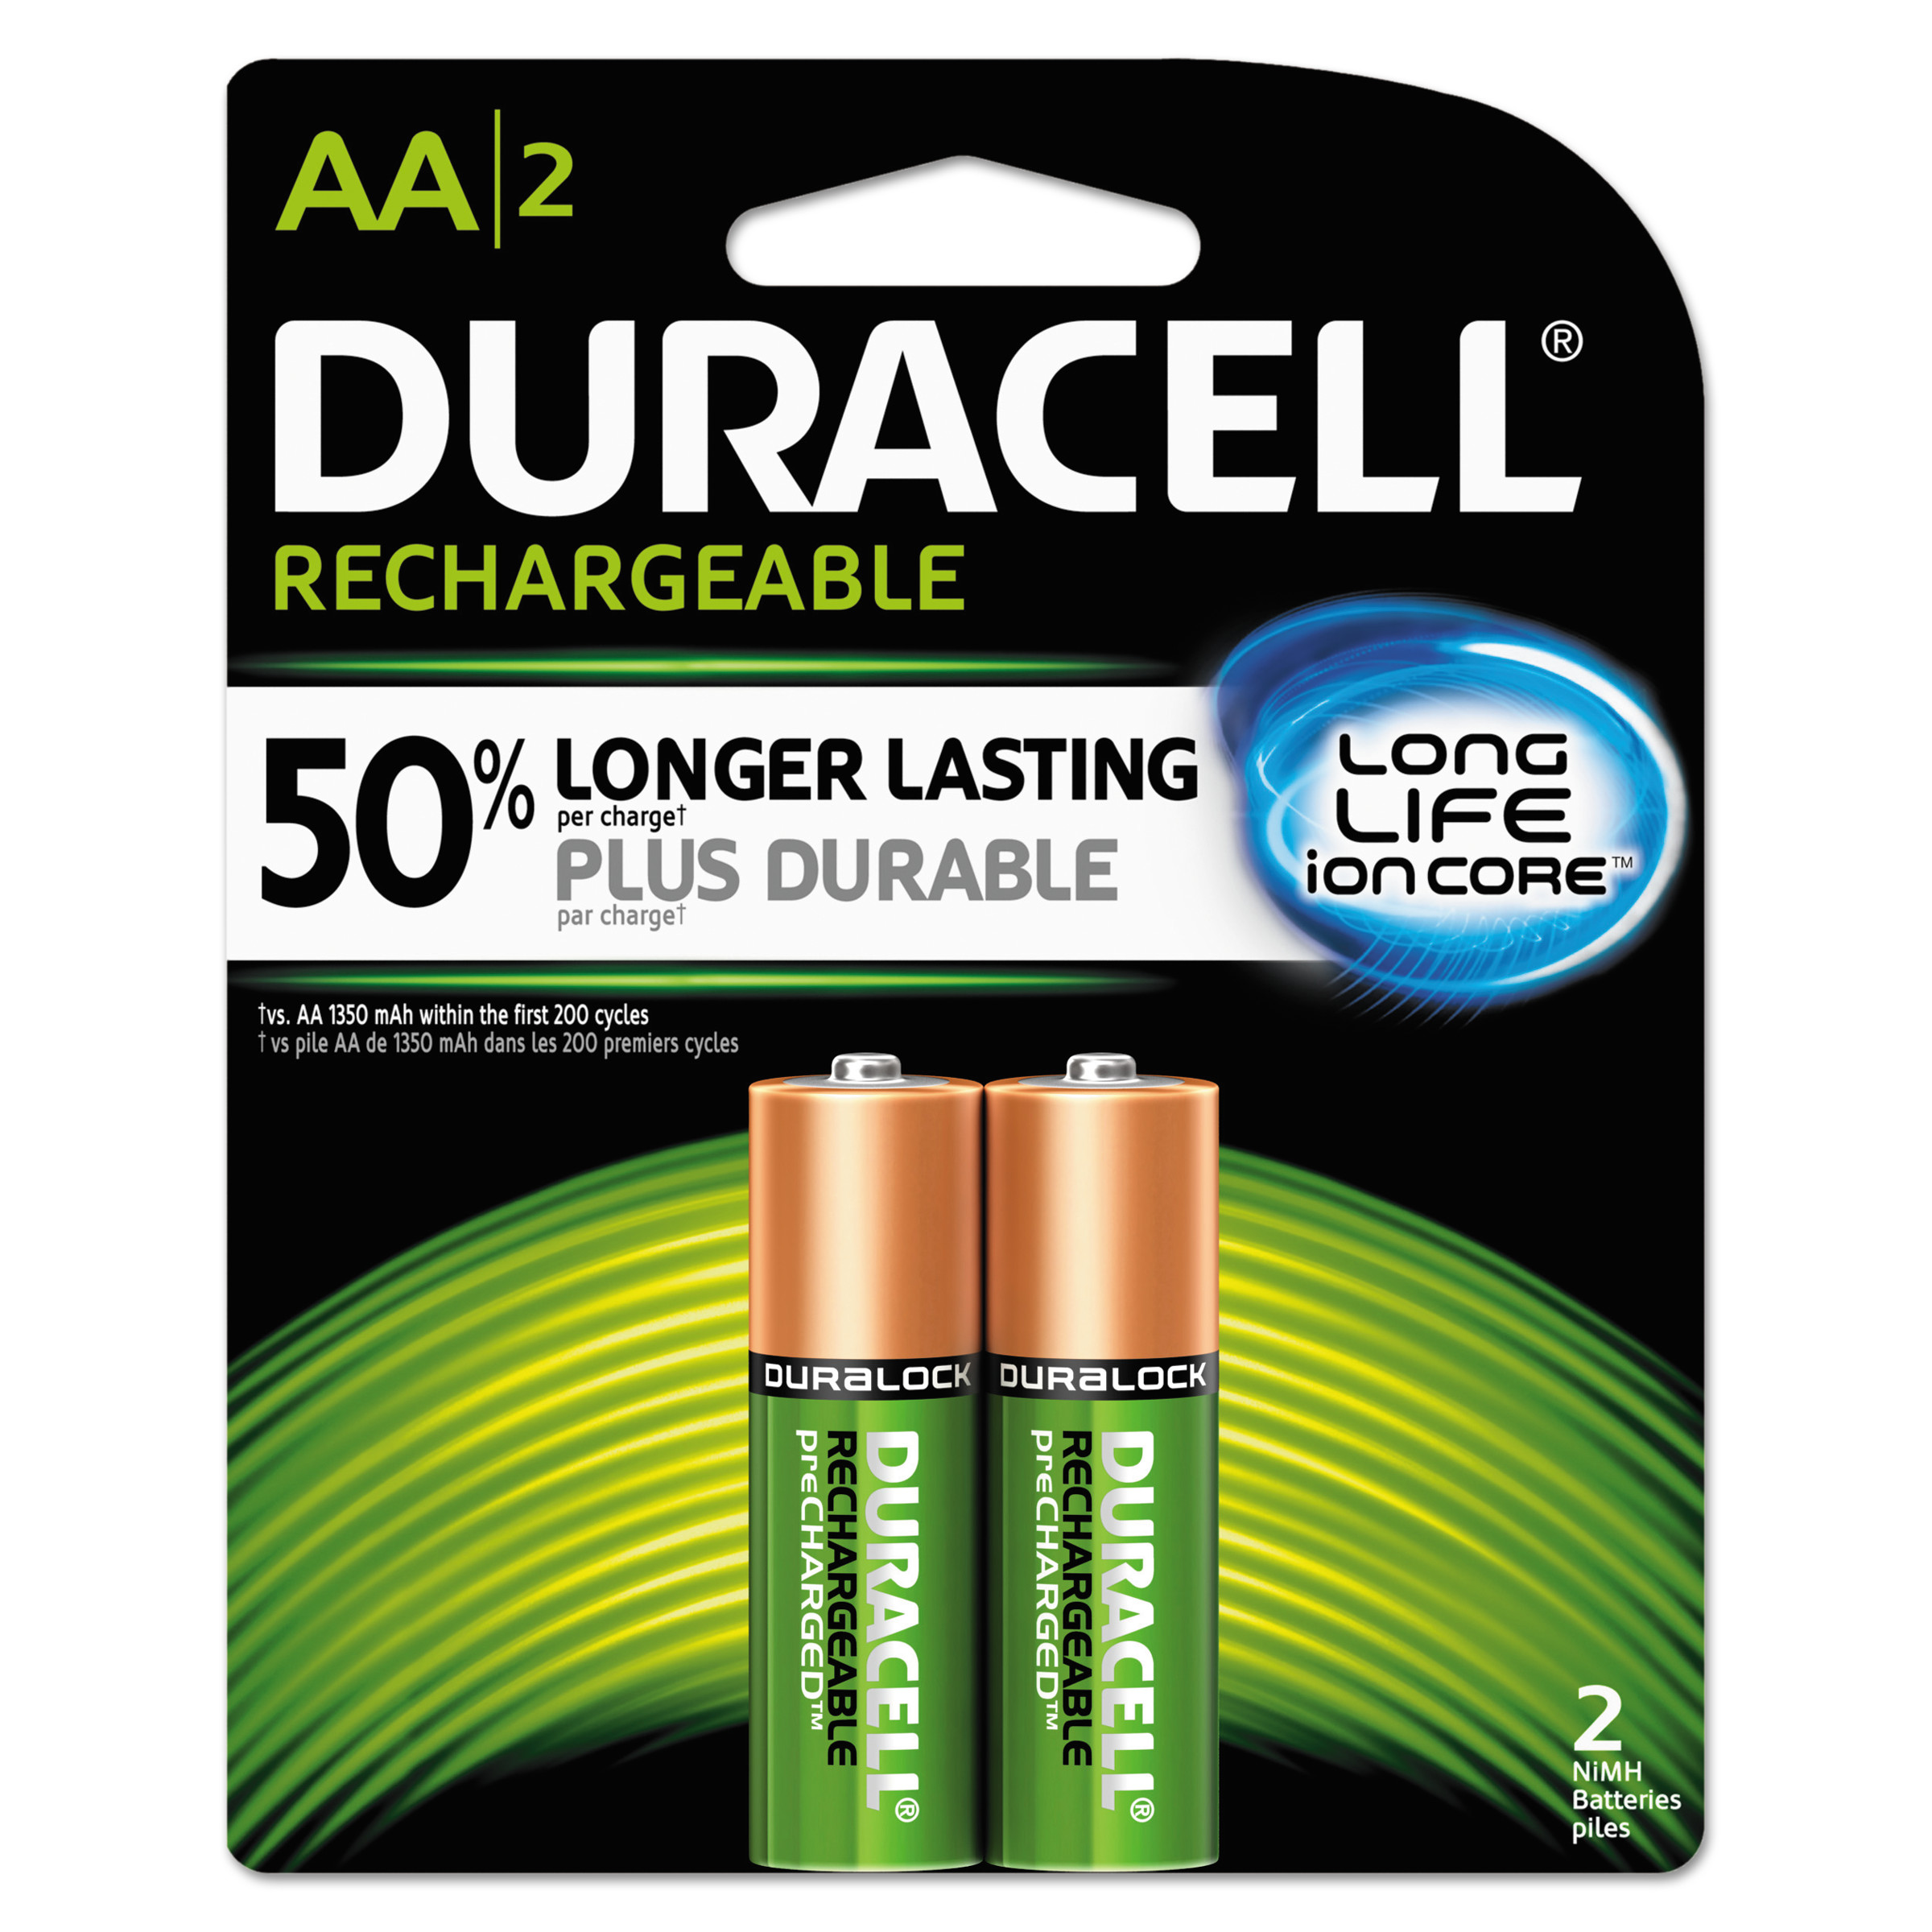 Duracell Rechargeable NiMH Batteries with Duralock Power Preserve Technology, AA, 2-Pack